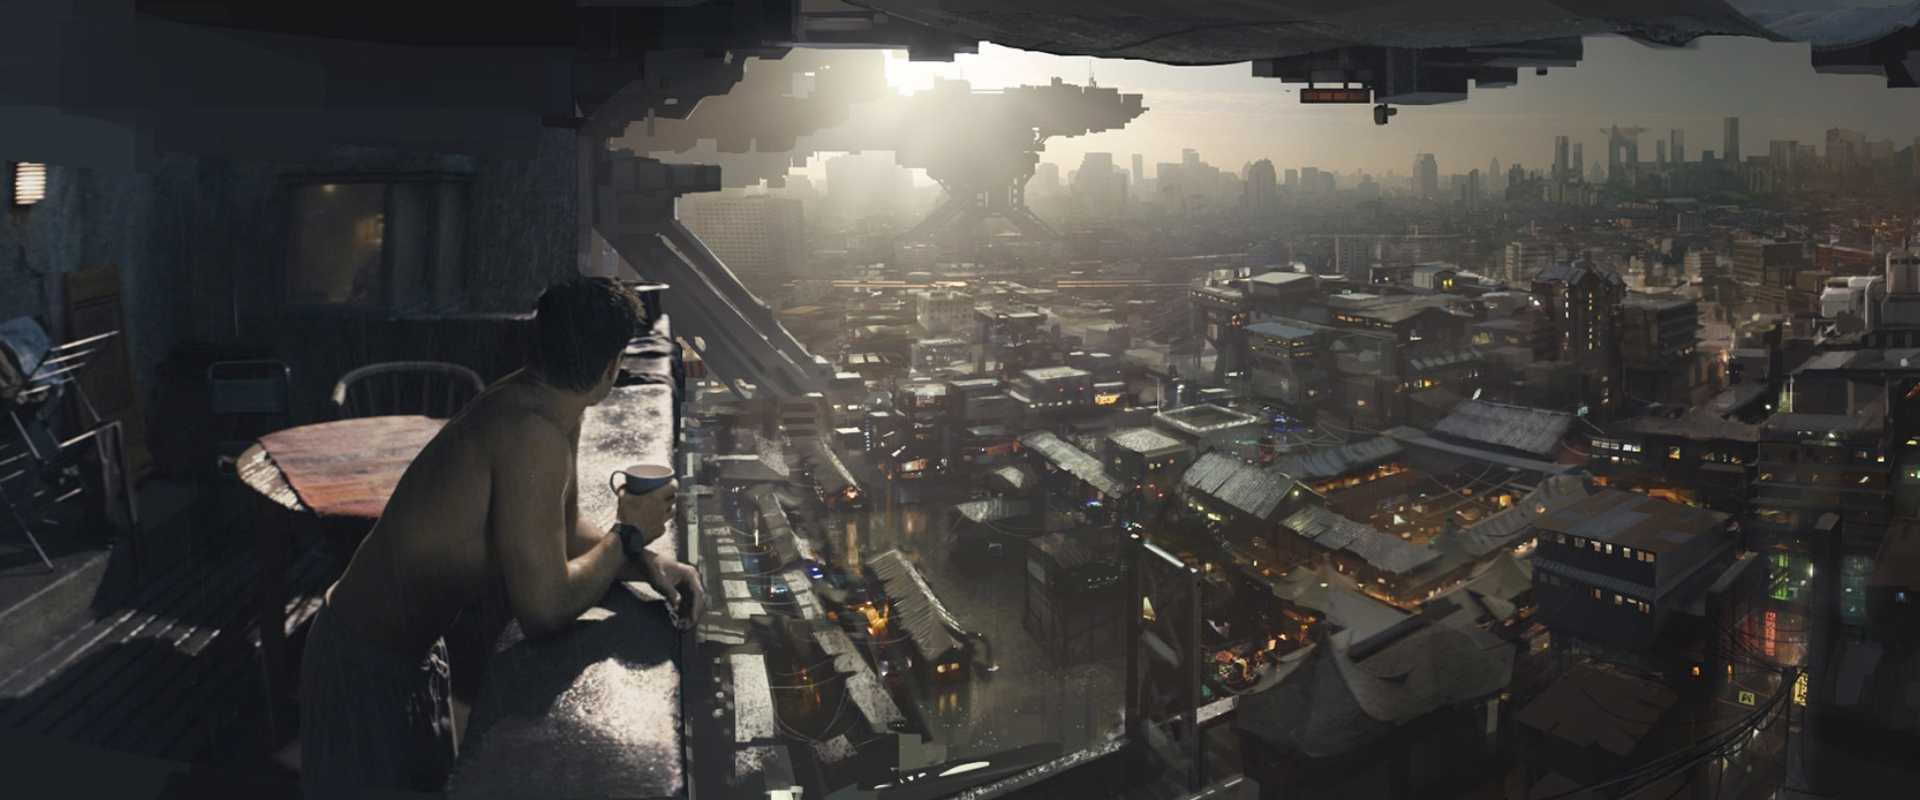 Concept art for Total Recall in the article about Concept Artist